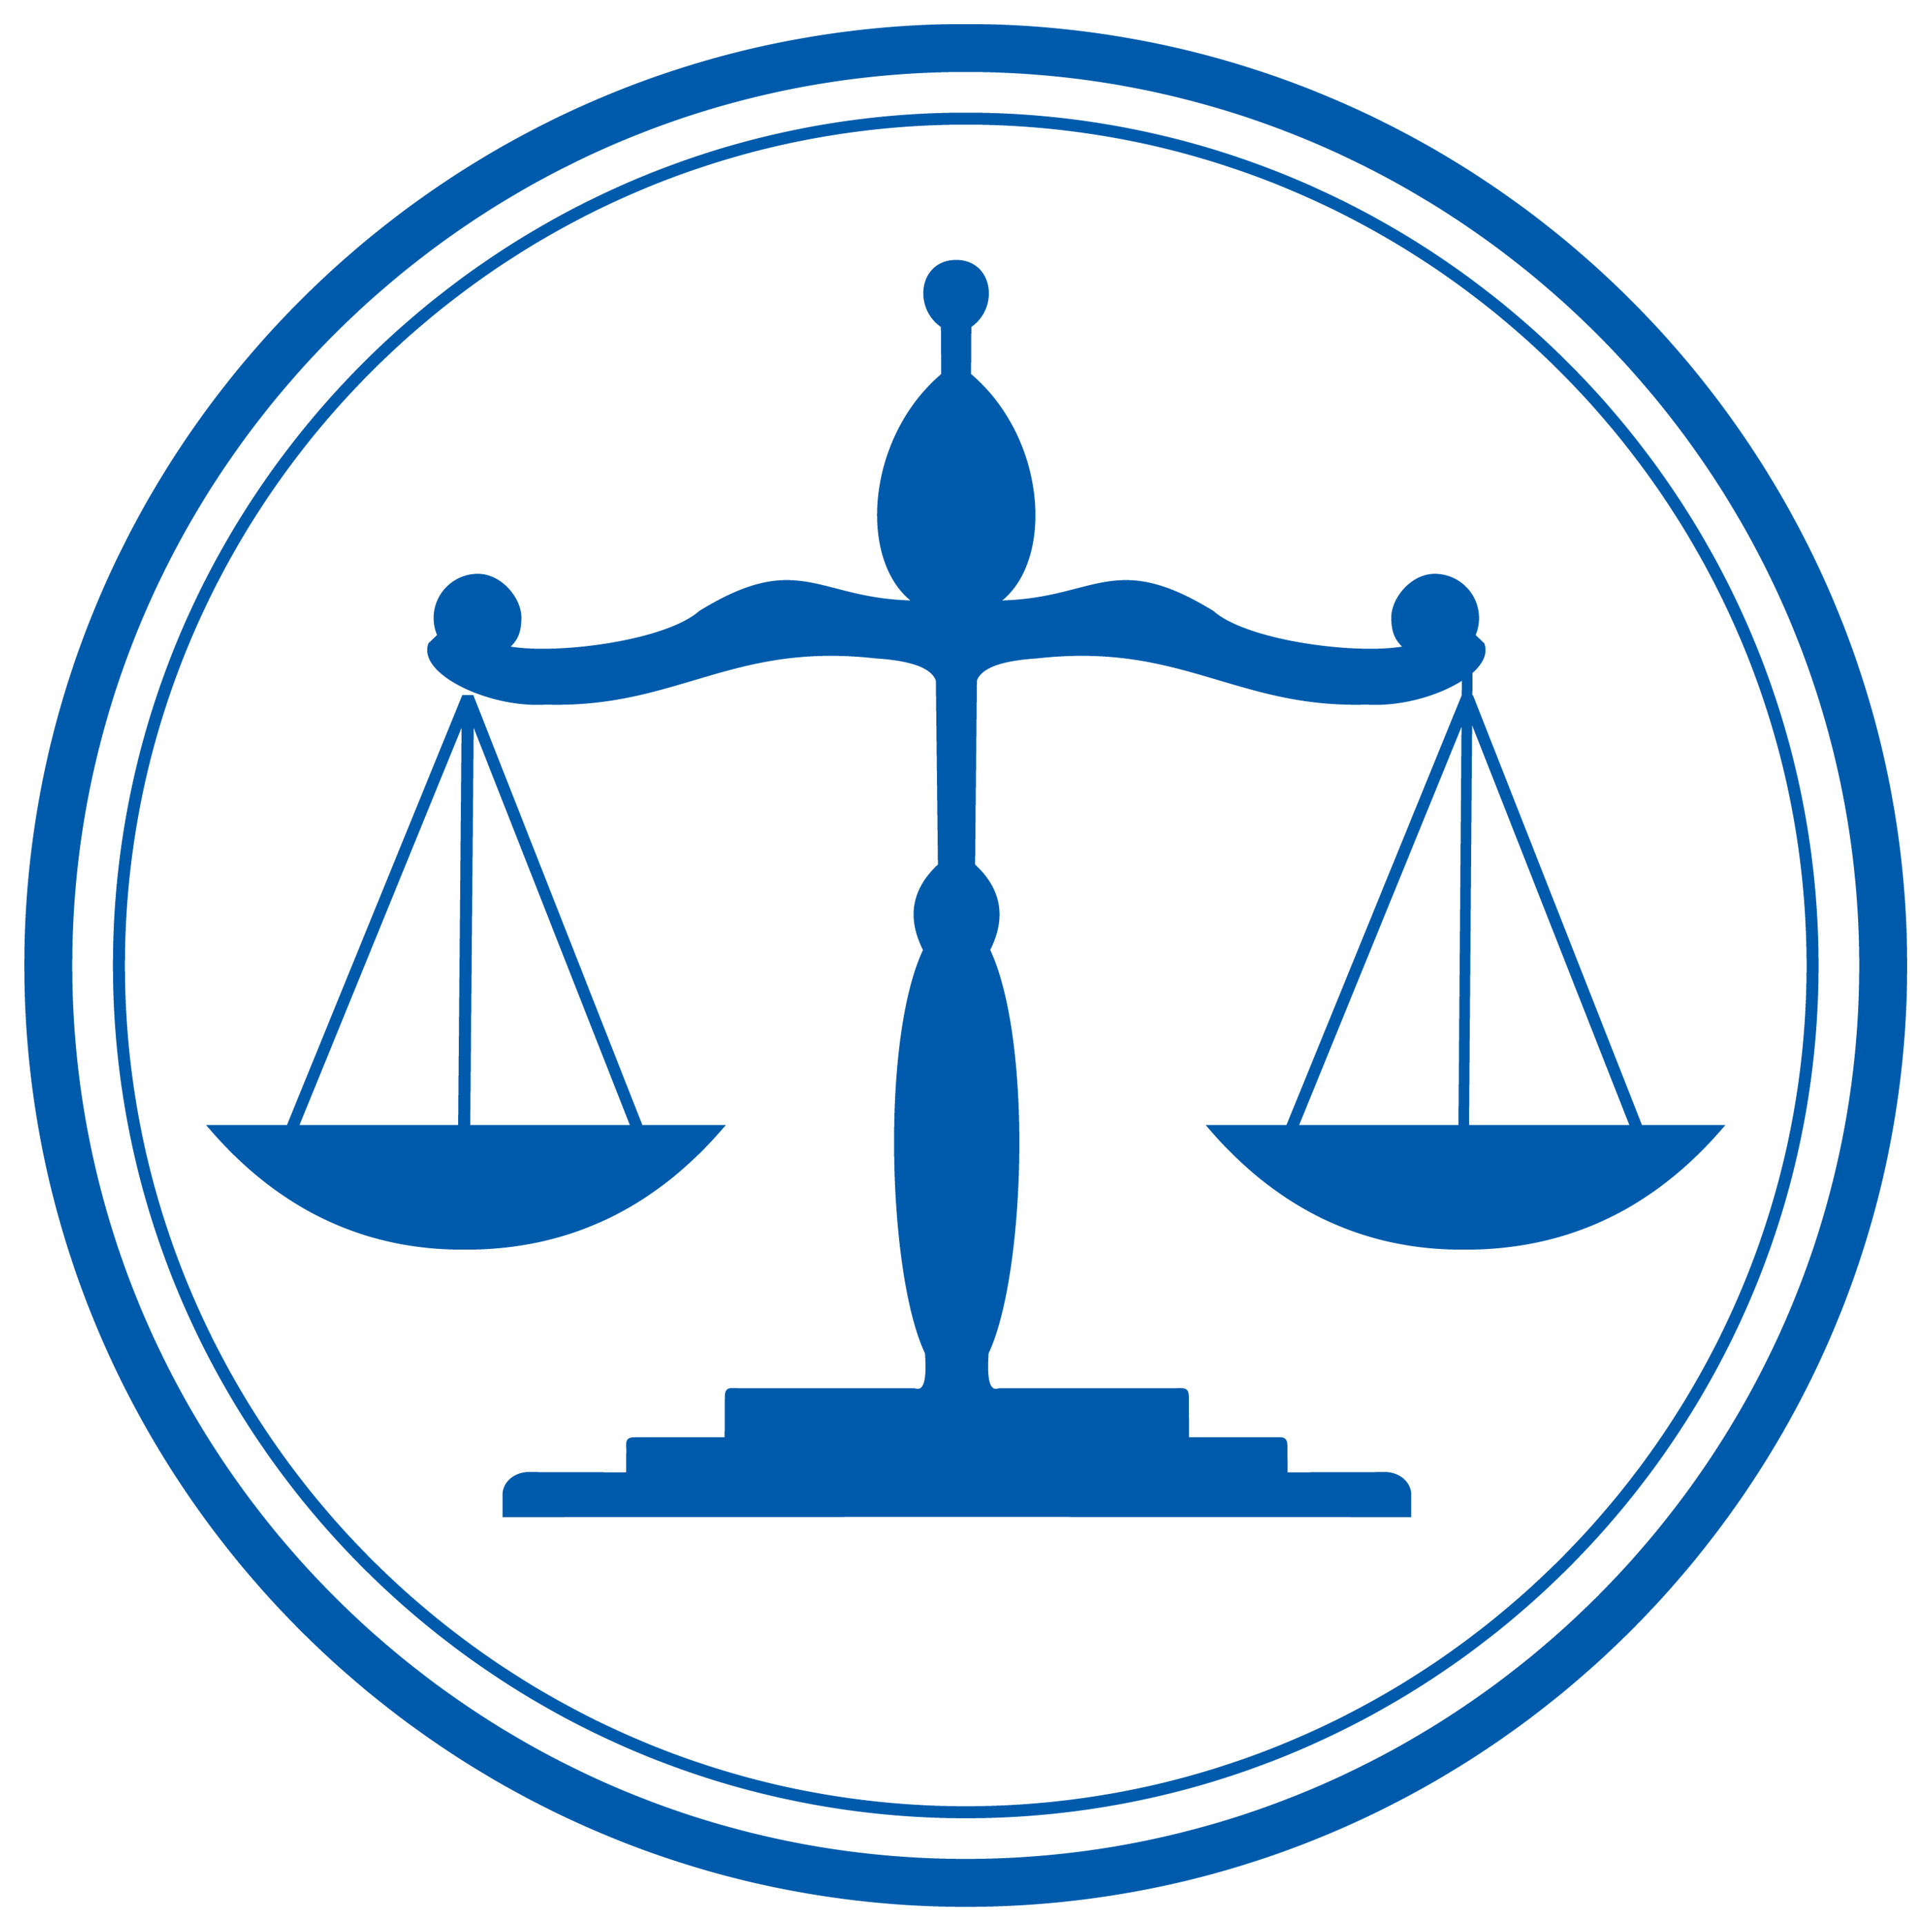 Clipart balance justice graphic library download Balance De Justice - Clipart library - Clip Art Library graphic library download